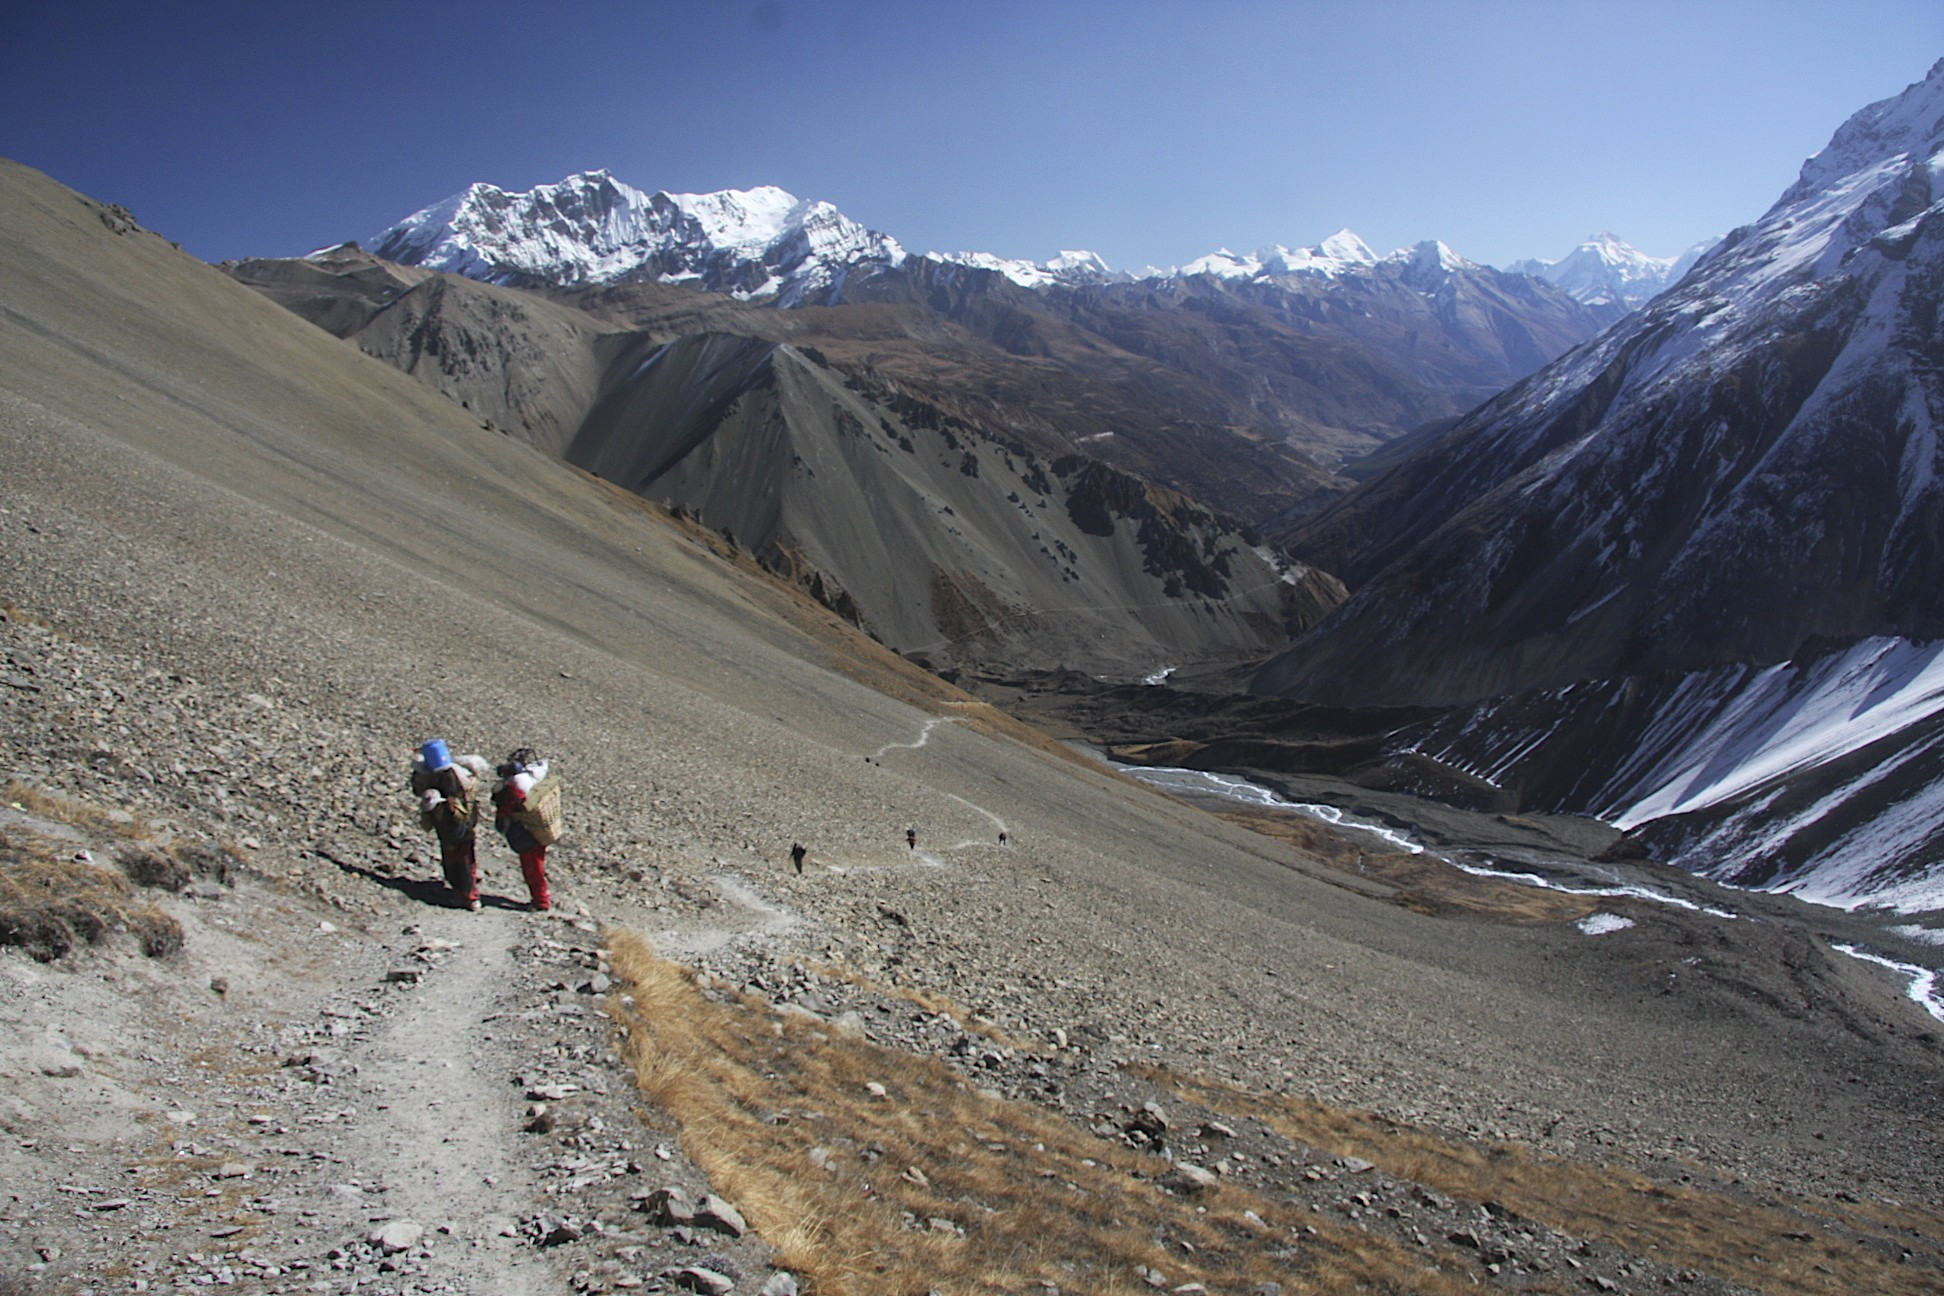 The approach to Tilicho Lake